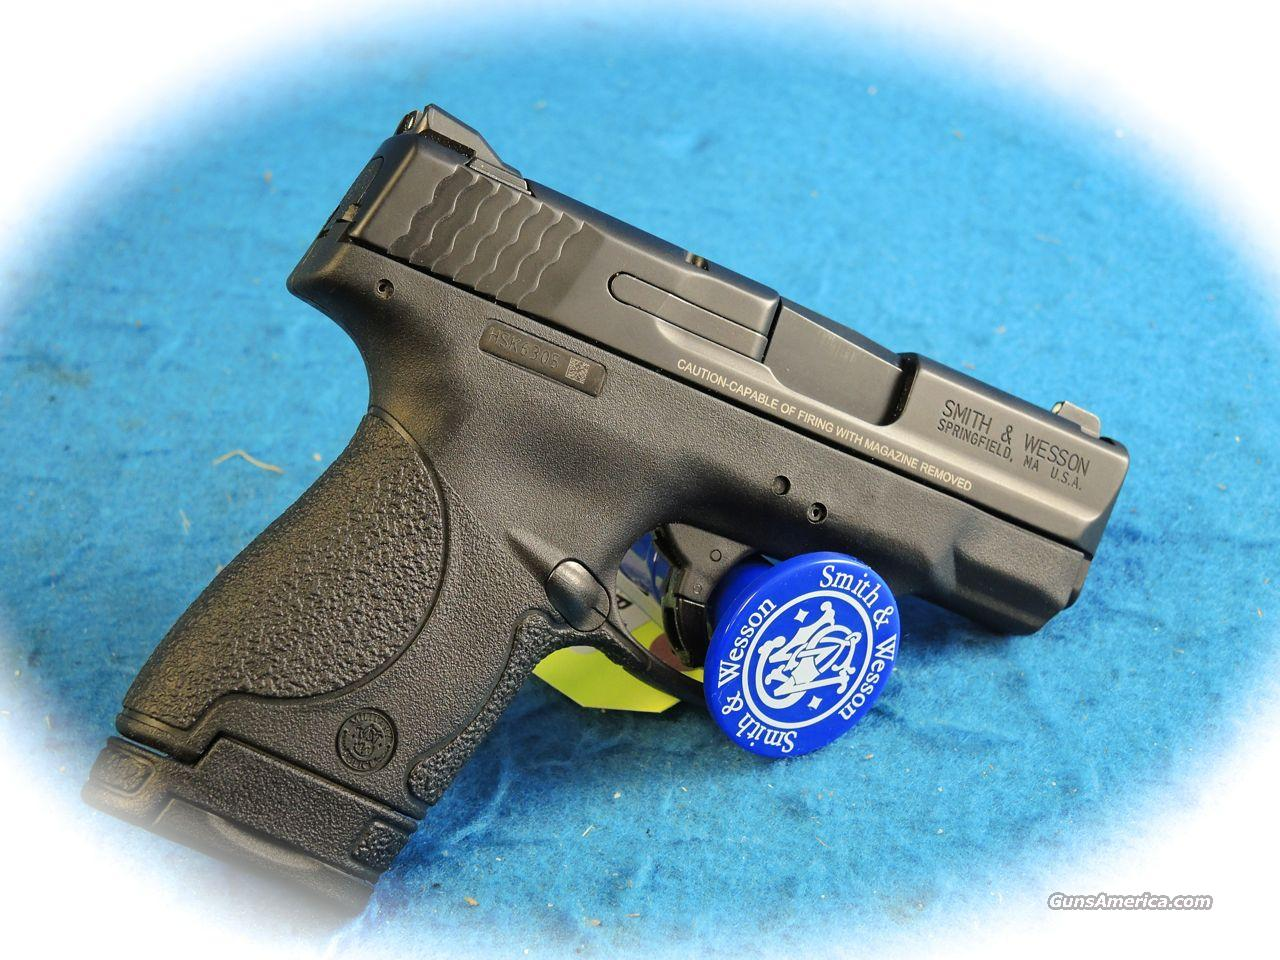 Smith & Wesson 9mm Shield **Like New**  Guns > Pistols > Smith & Wesson Pistols - Autos > Polymer Frame